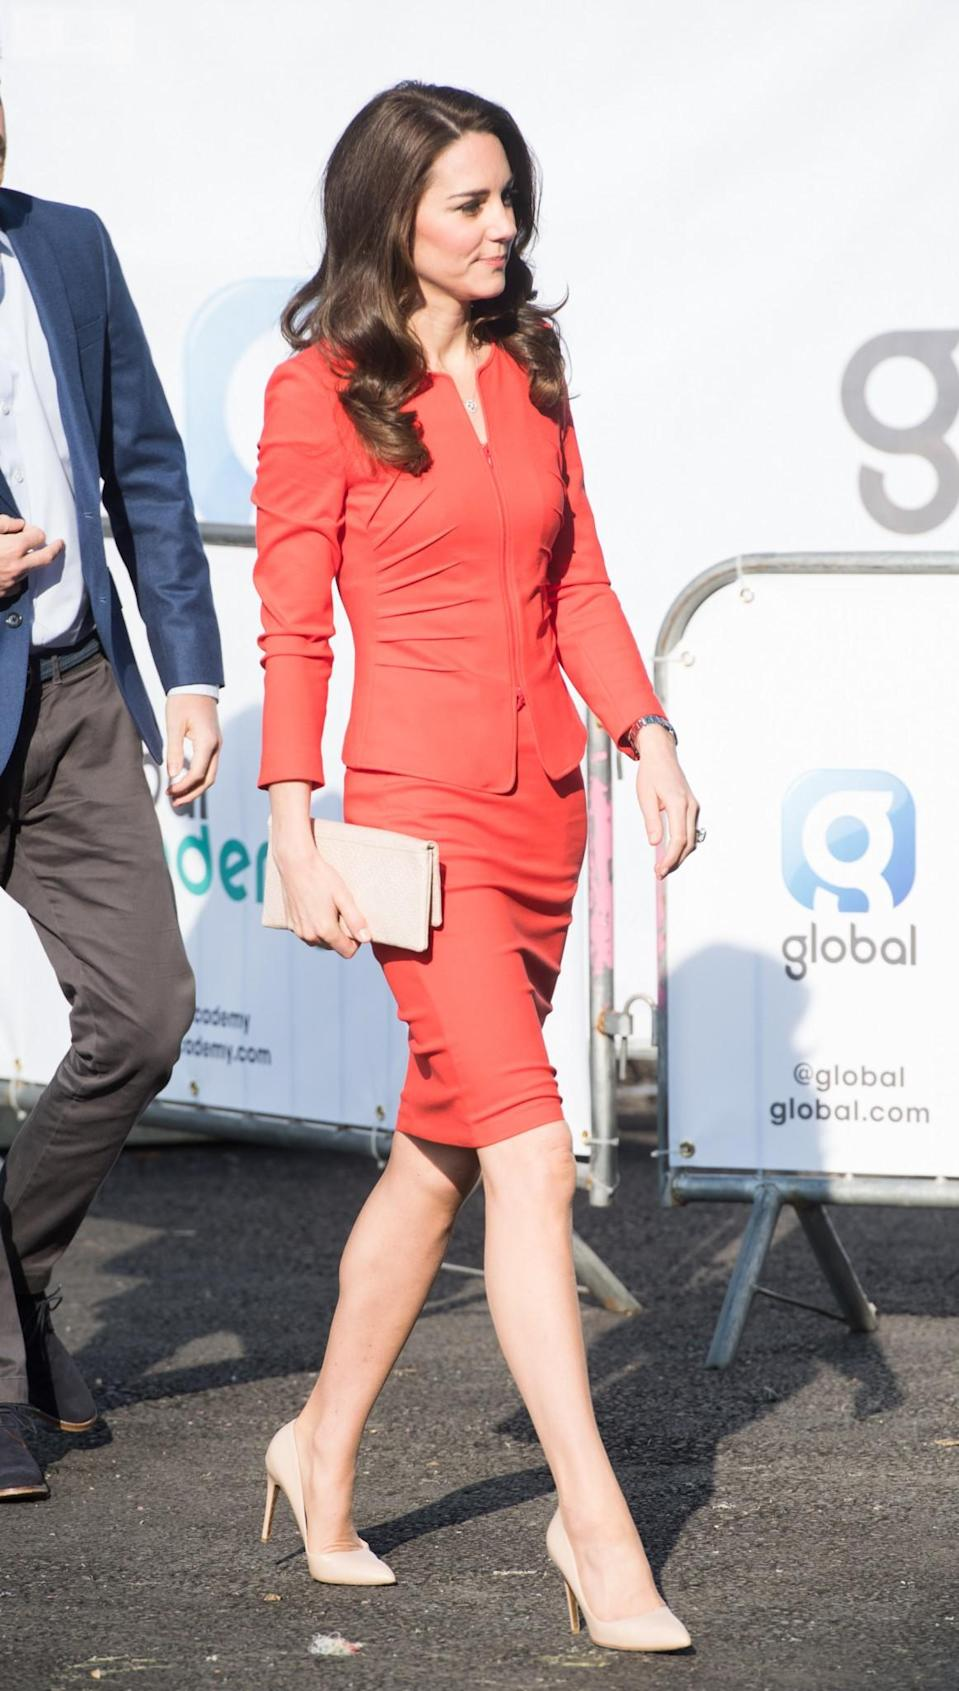 <p>Kate donned a tomato red skirt suit for the opening of The Global Academy. Her workwear look was by Armani Collezioni – the lower-priced line from the Italian brand – and featured a ruched jacket and tight-fitting pencil skirt. As always, the Duchess chose her trusty nude accessories, wearing Rupert Sanderson heels and a clutch by Etui.<br><i>[Photo: PA]</i> </p>